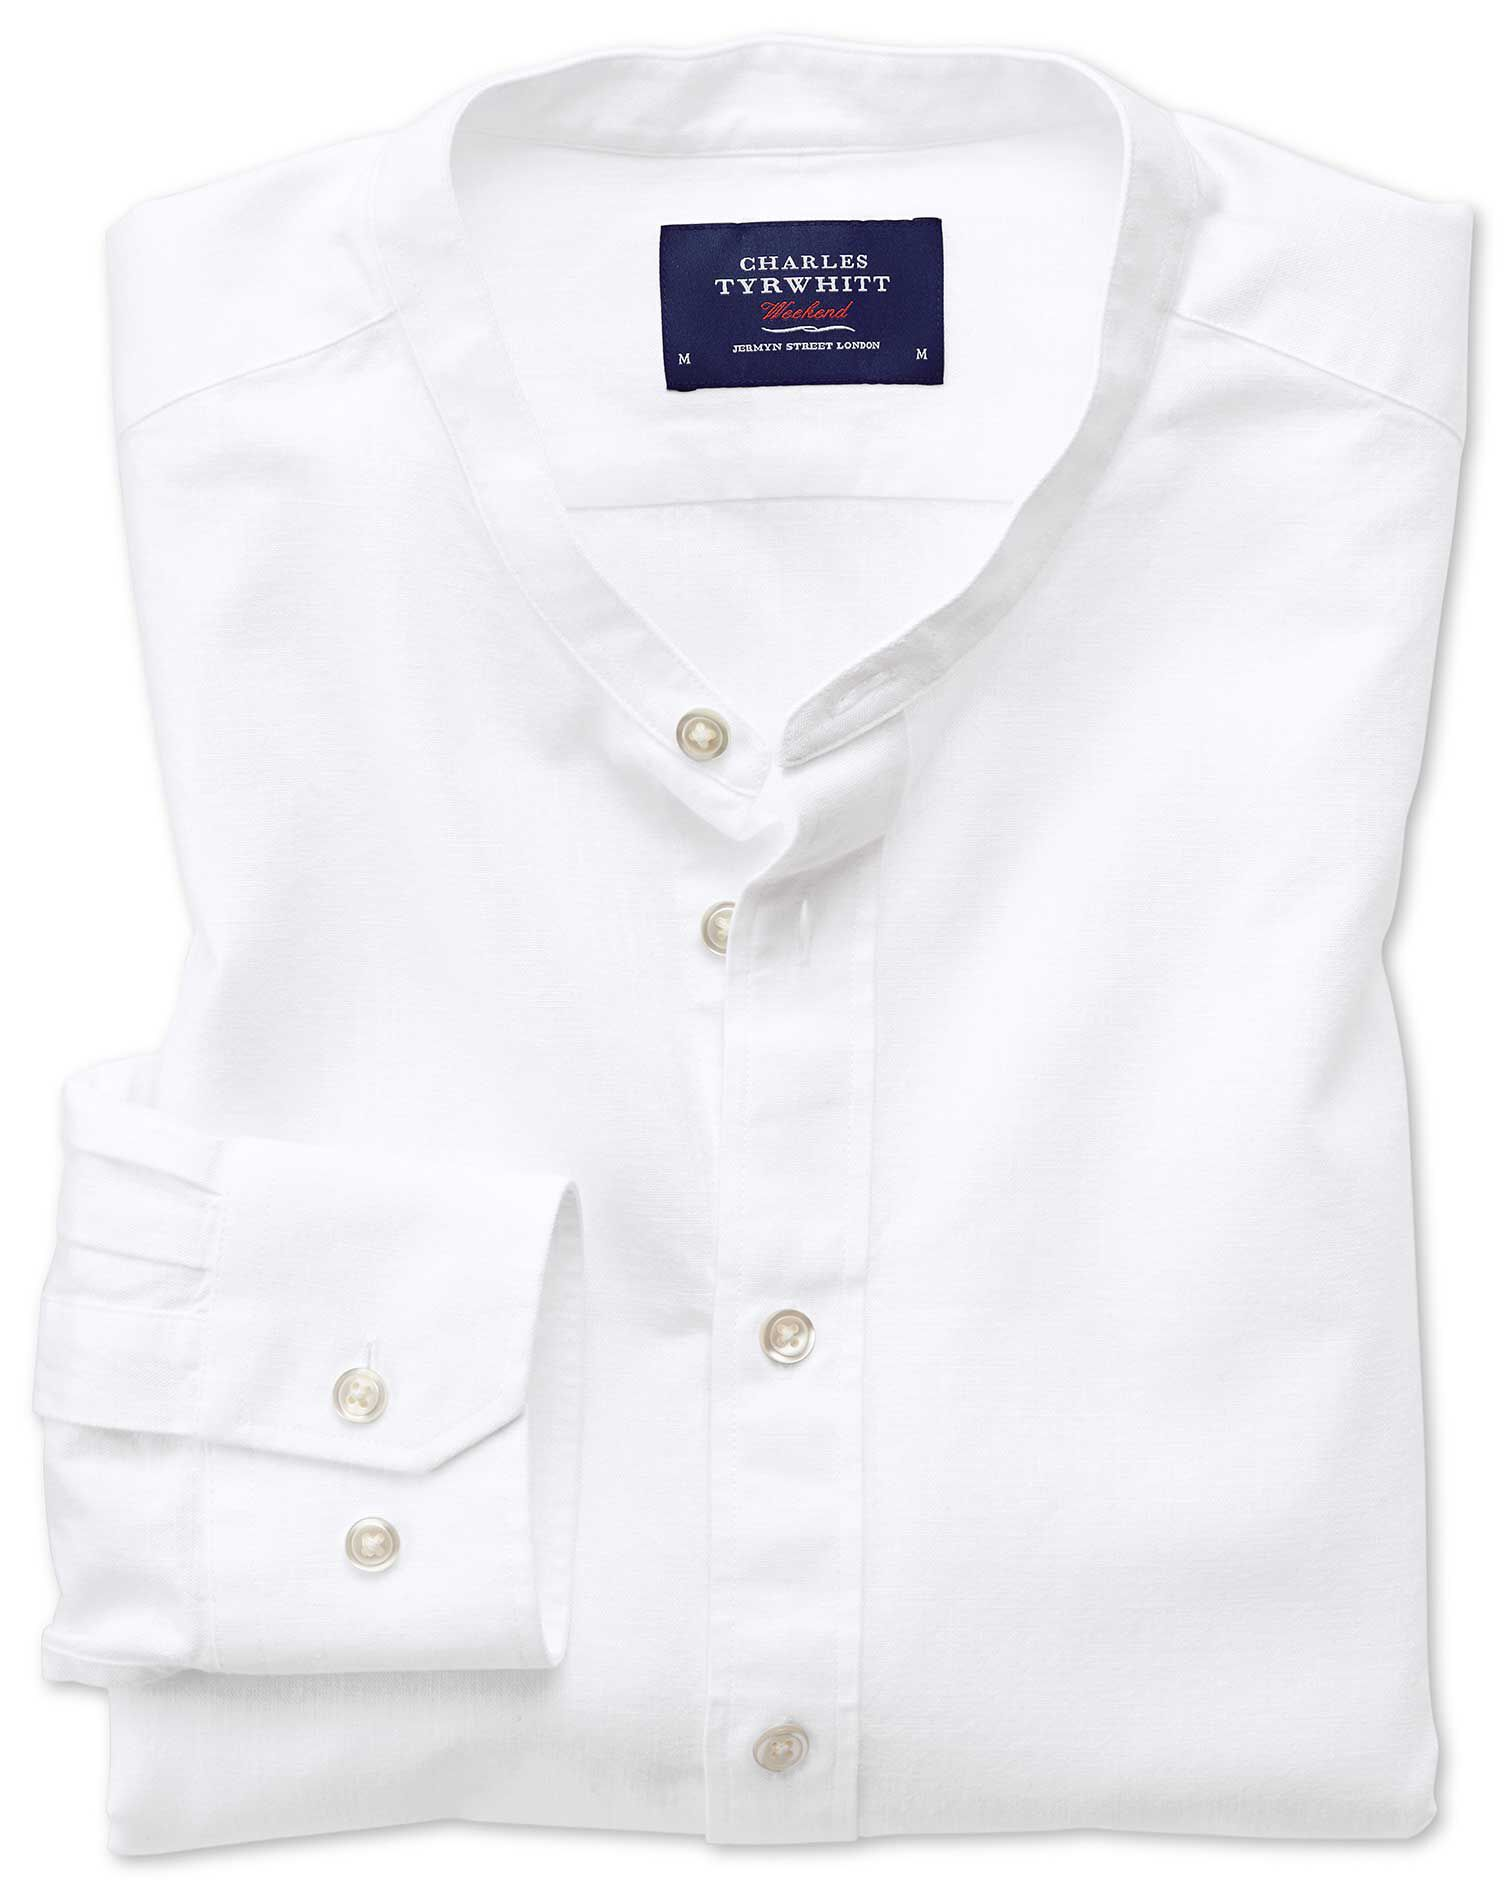 Classic Fit Collarless White Cotton Shirt Single Cuff Size Medium by Charles Tyrwhitt